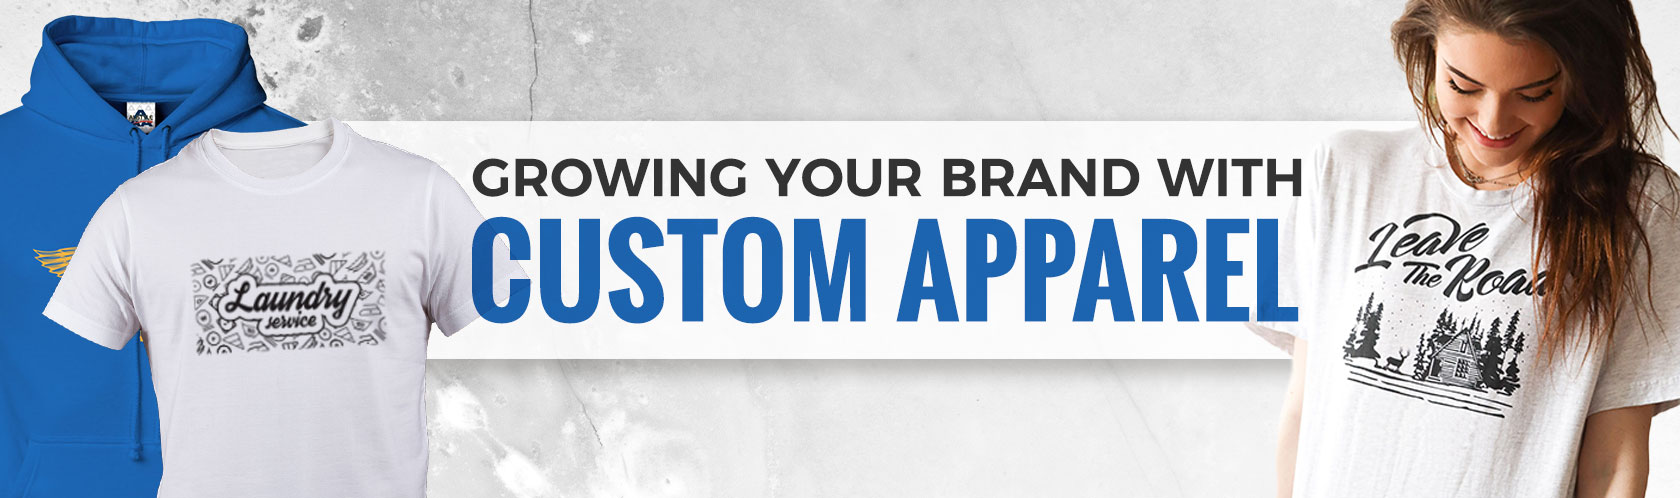 Growing Your Brand with Custom Apparel